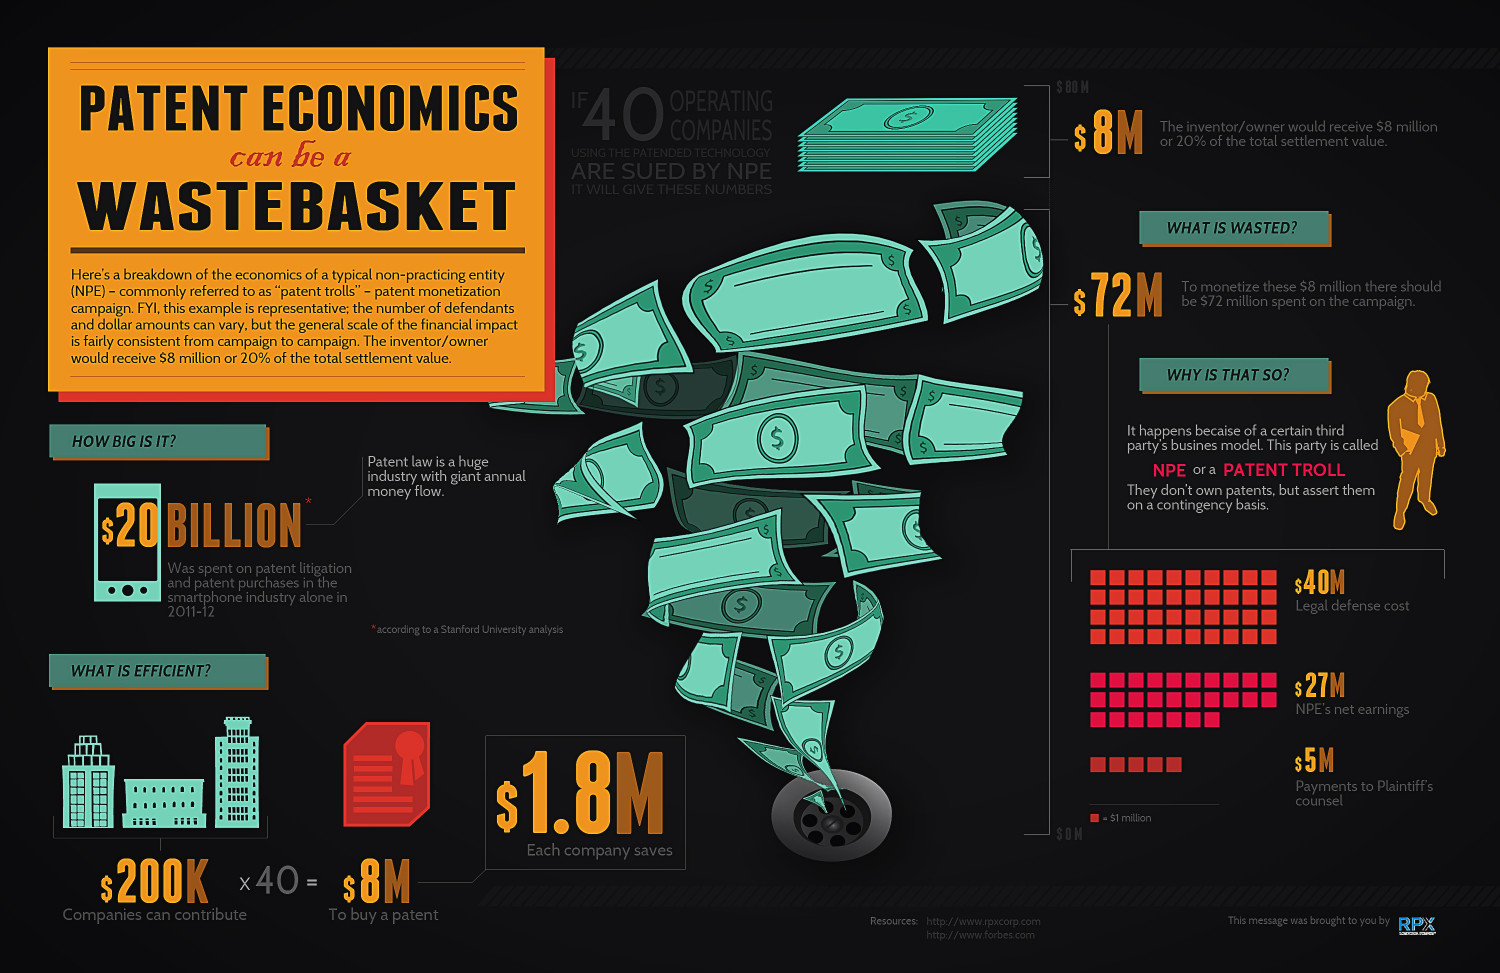 Patent Economics Can be a Wastebasket Infographic